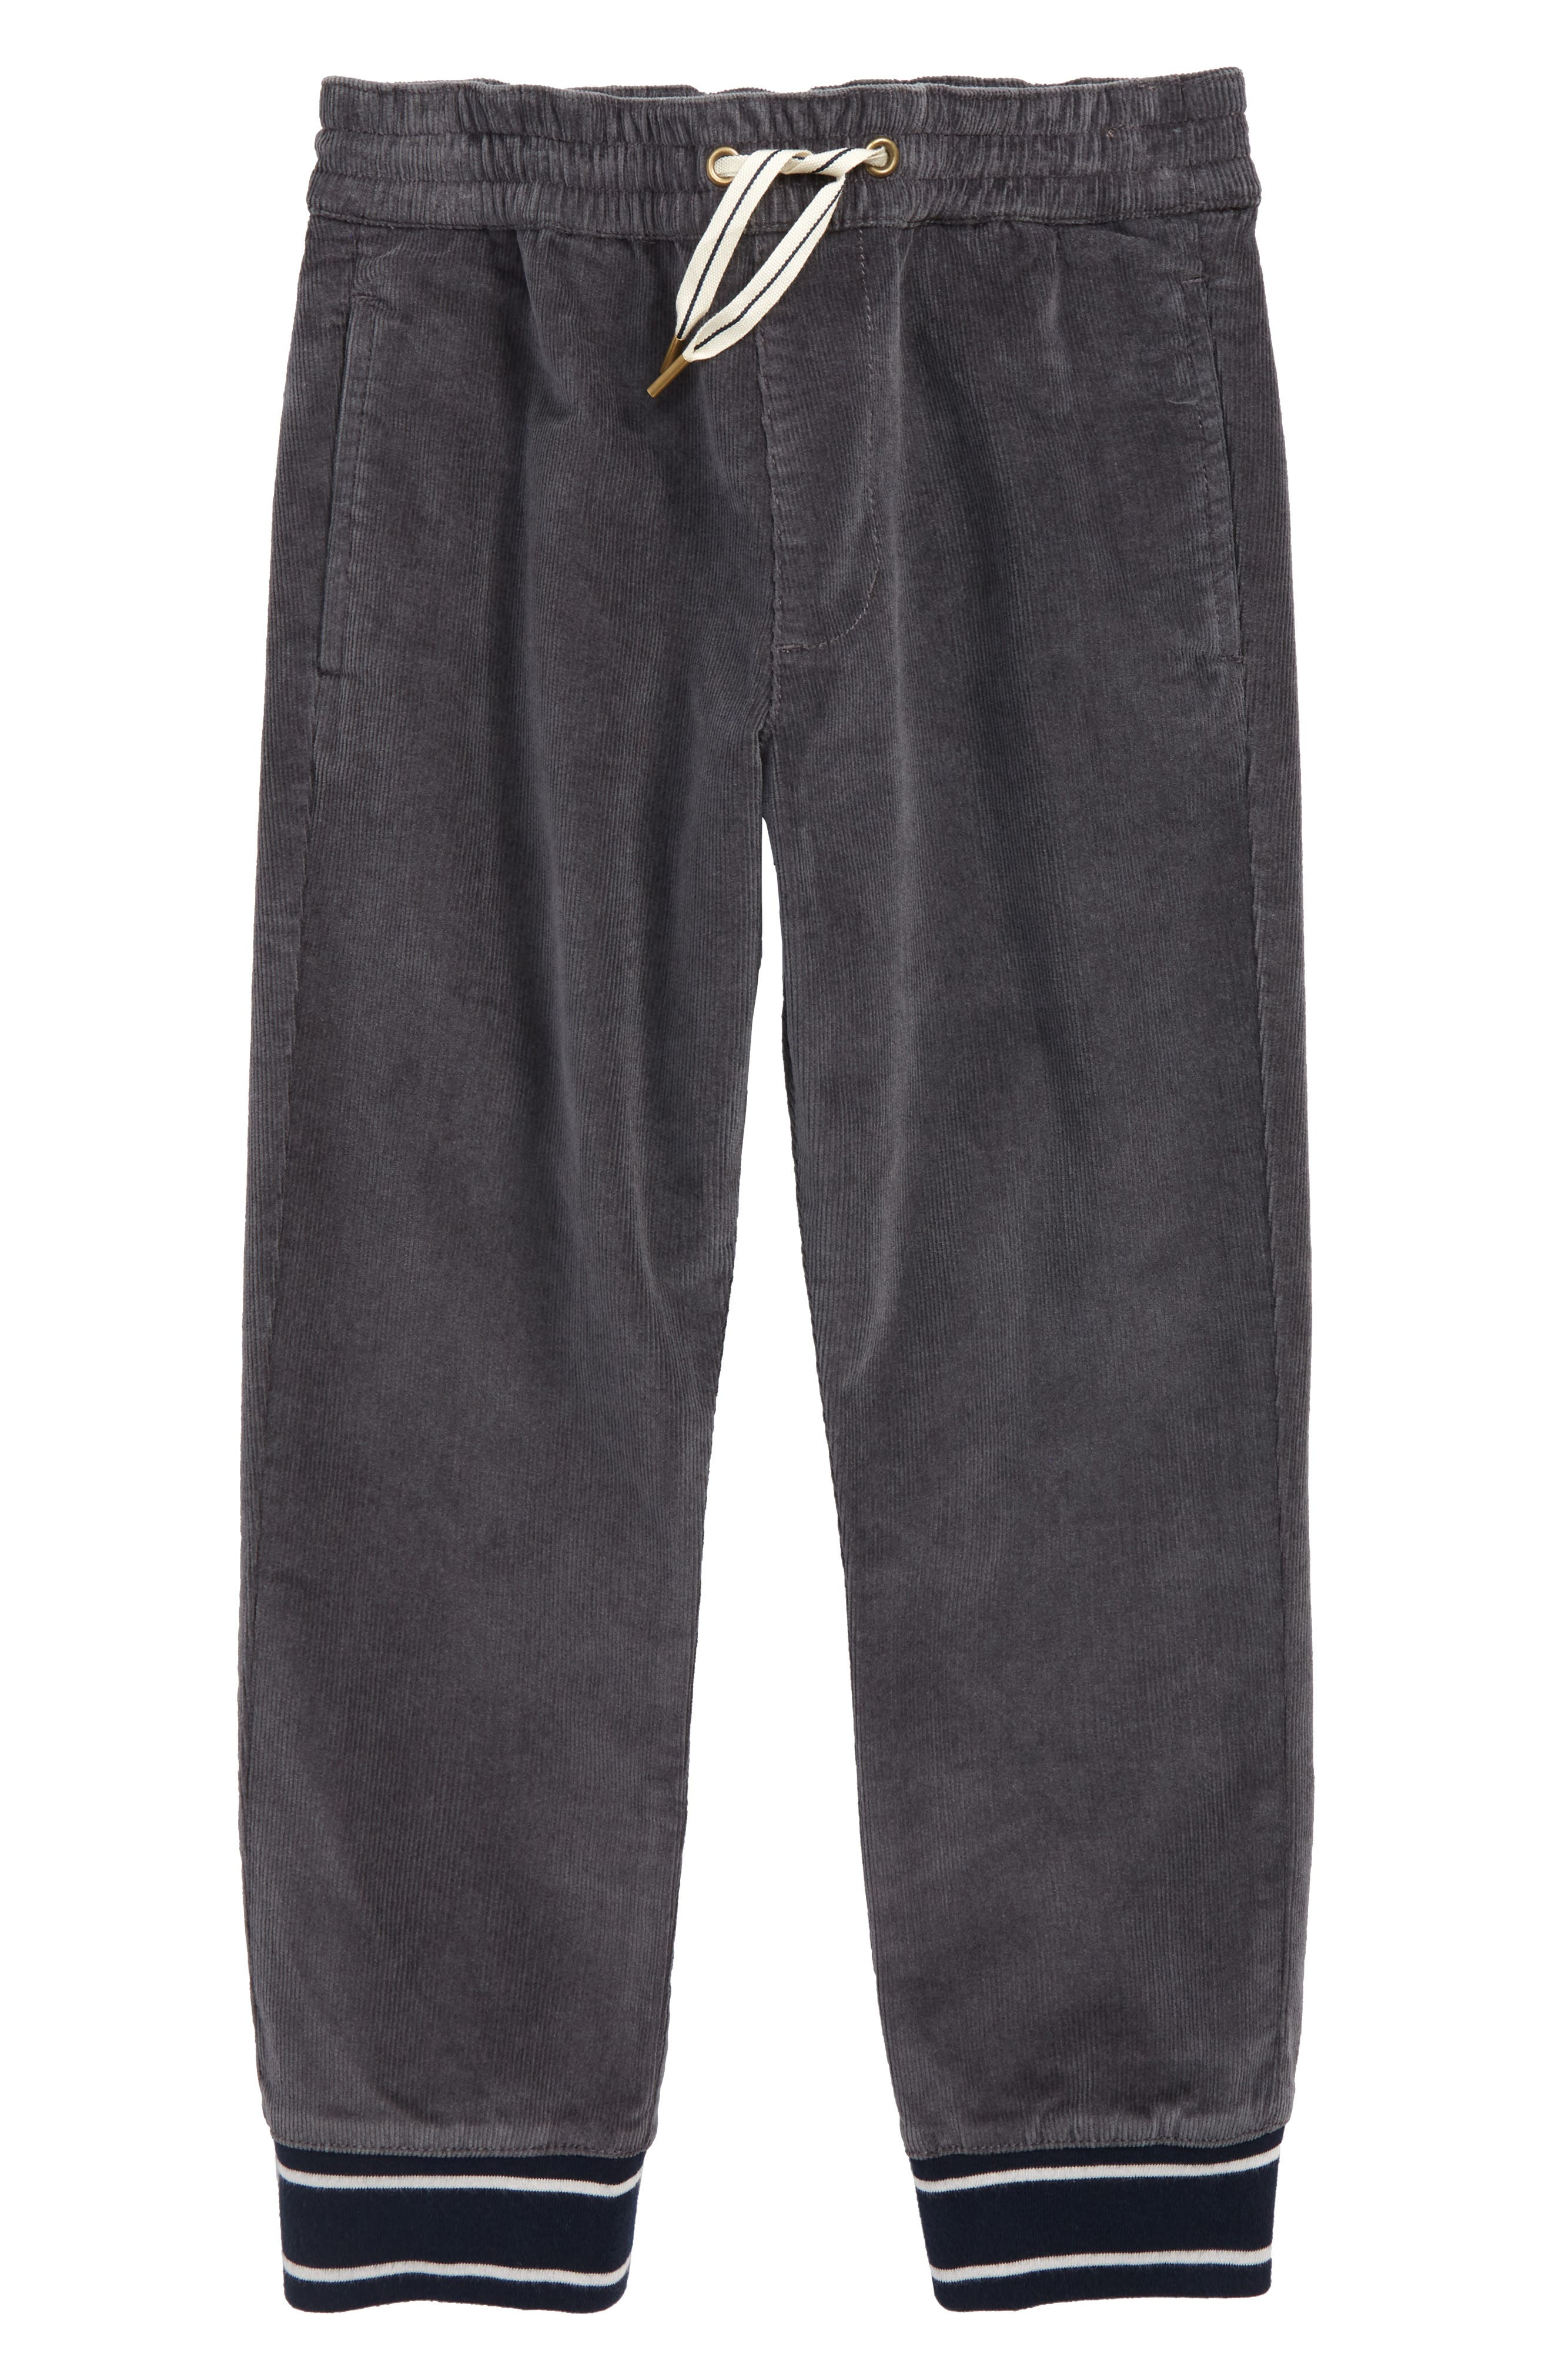 Corduroy Pull-On Pants,                         Main,                         color, COAL GREY